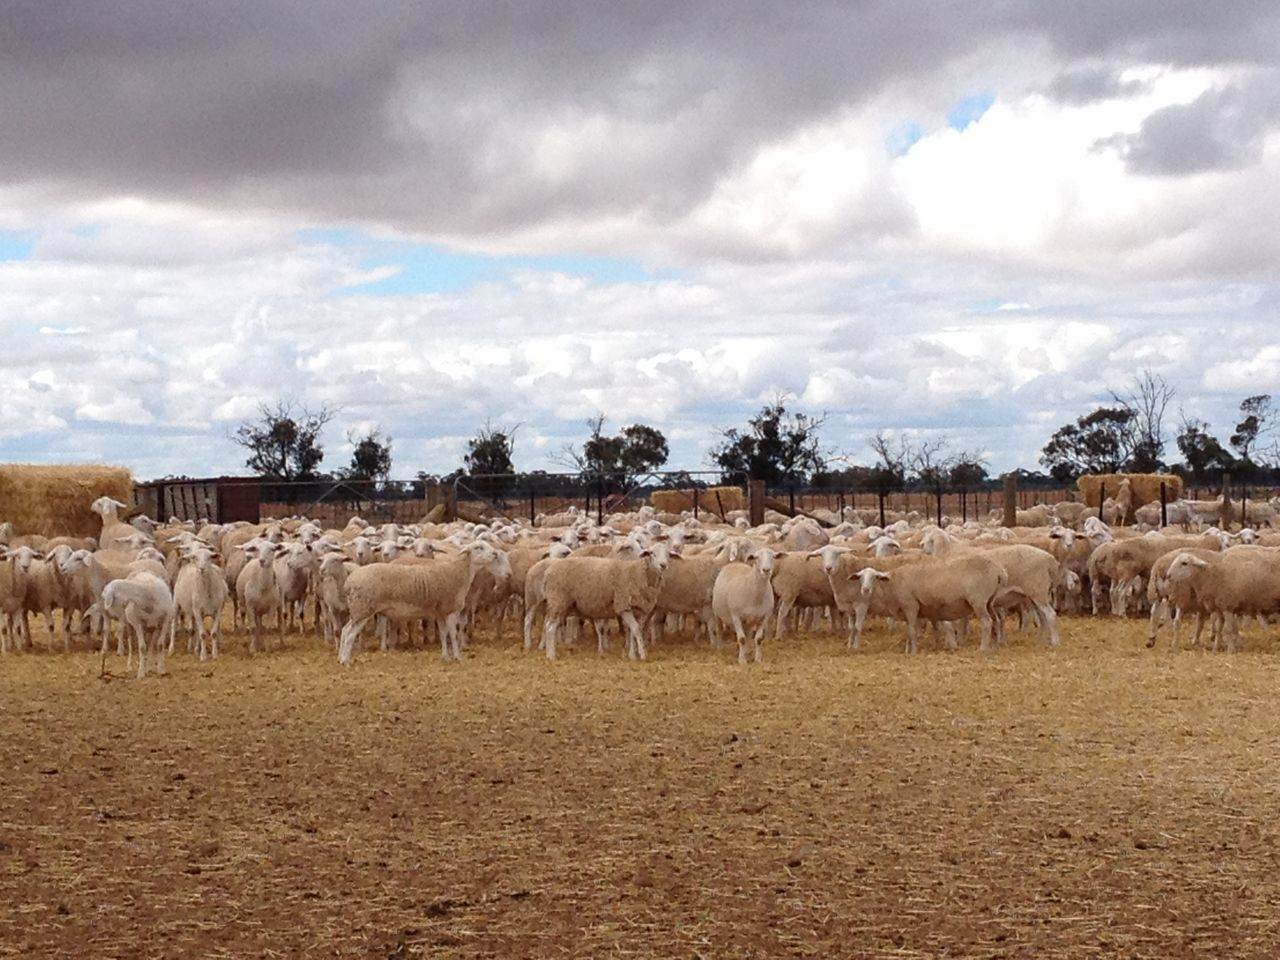 #Australia #farm #farmlife #sheep #Working #wwoofing Arid Climate Beauty In Nature Cloud - Sky Day Grazing Herbivorous Medium Group Of Animals Nature Non-urban Scene Plain Tranquil Scene Tranquility